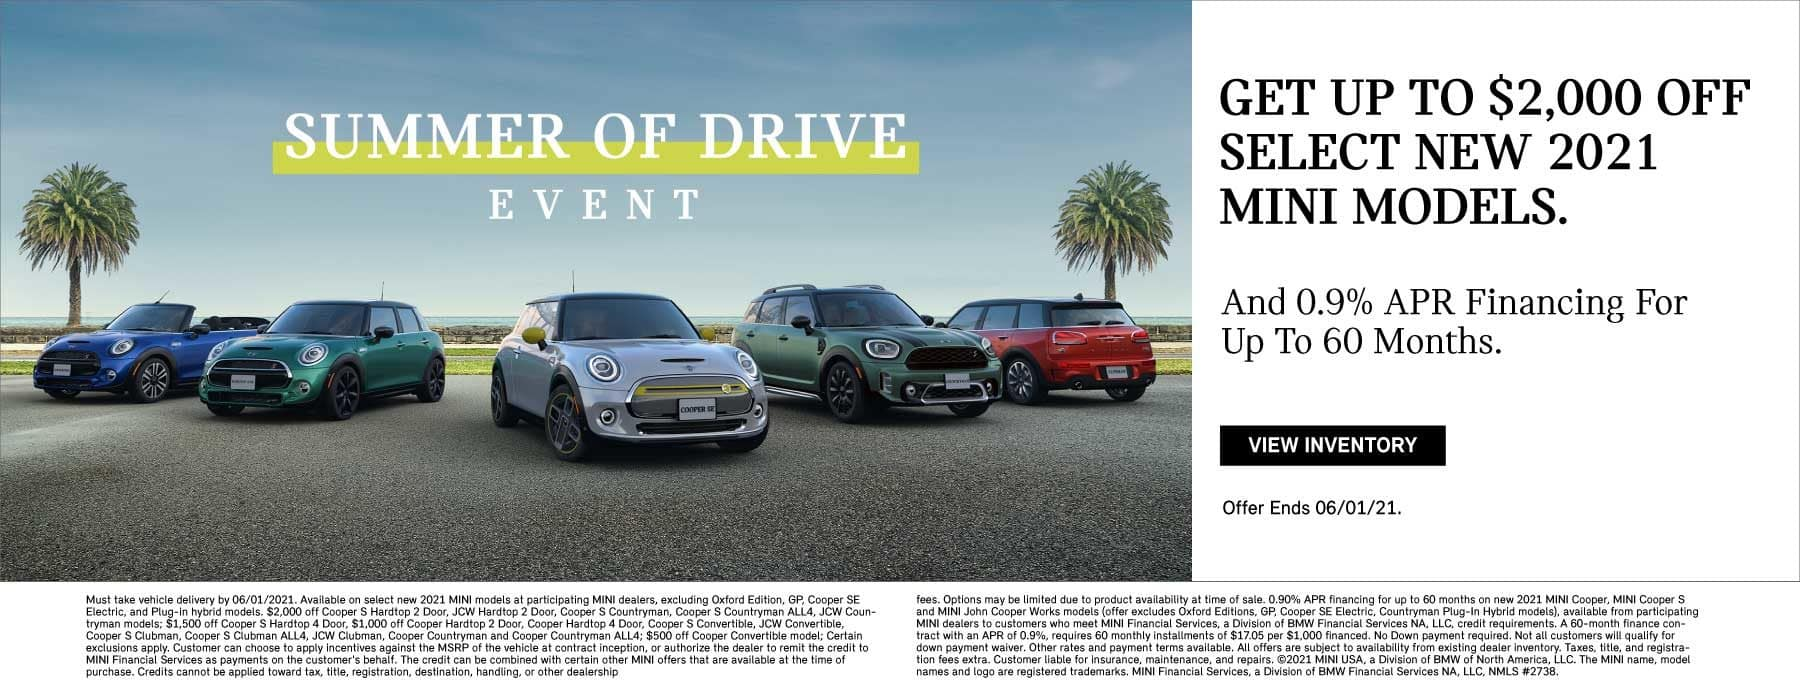 Get up to $2,000 off select new 2021 MINI models. And 0.9% APR financing for up to 60 months. Offer ends 06/01/21. Click to view inventory. See dealer for full details. Image shows a family of 2021 MINI vehicles parked on pavement in front of the beach framed by two palm trees. MINIs Summer of Drive Event logo is placed over the image.